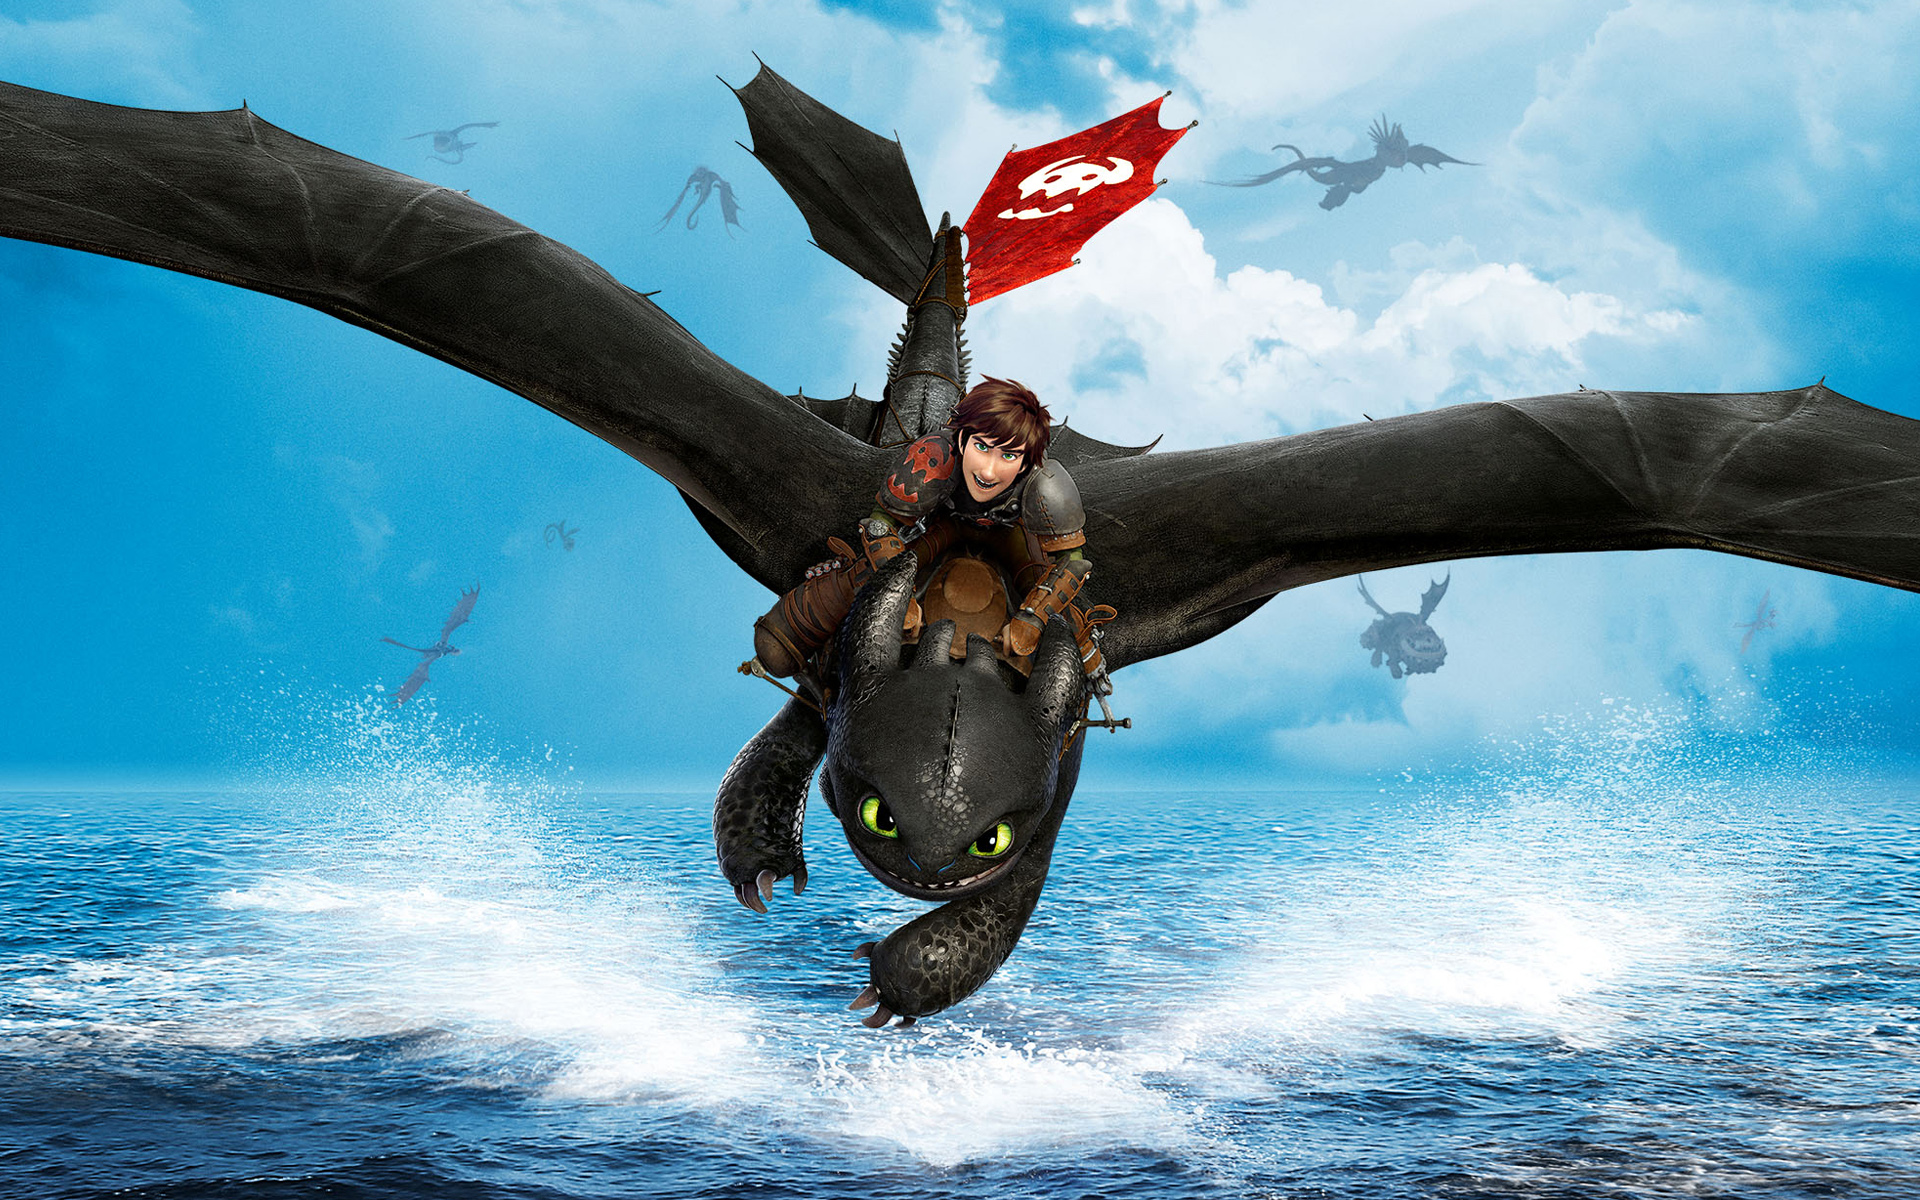 2014_how_to_train_your_dragon_2-widescreen_wallpapers-how-to-train-your-dragon-3-the-dark-secret-about-hiccup-toothless-spoilers__1_.jpeg